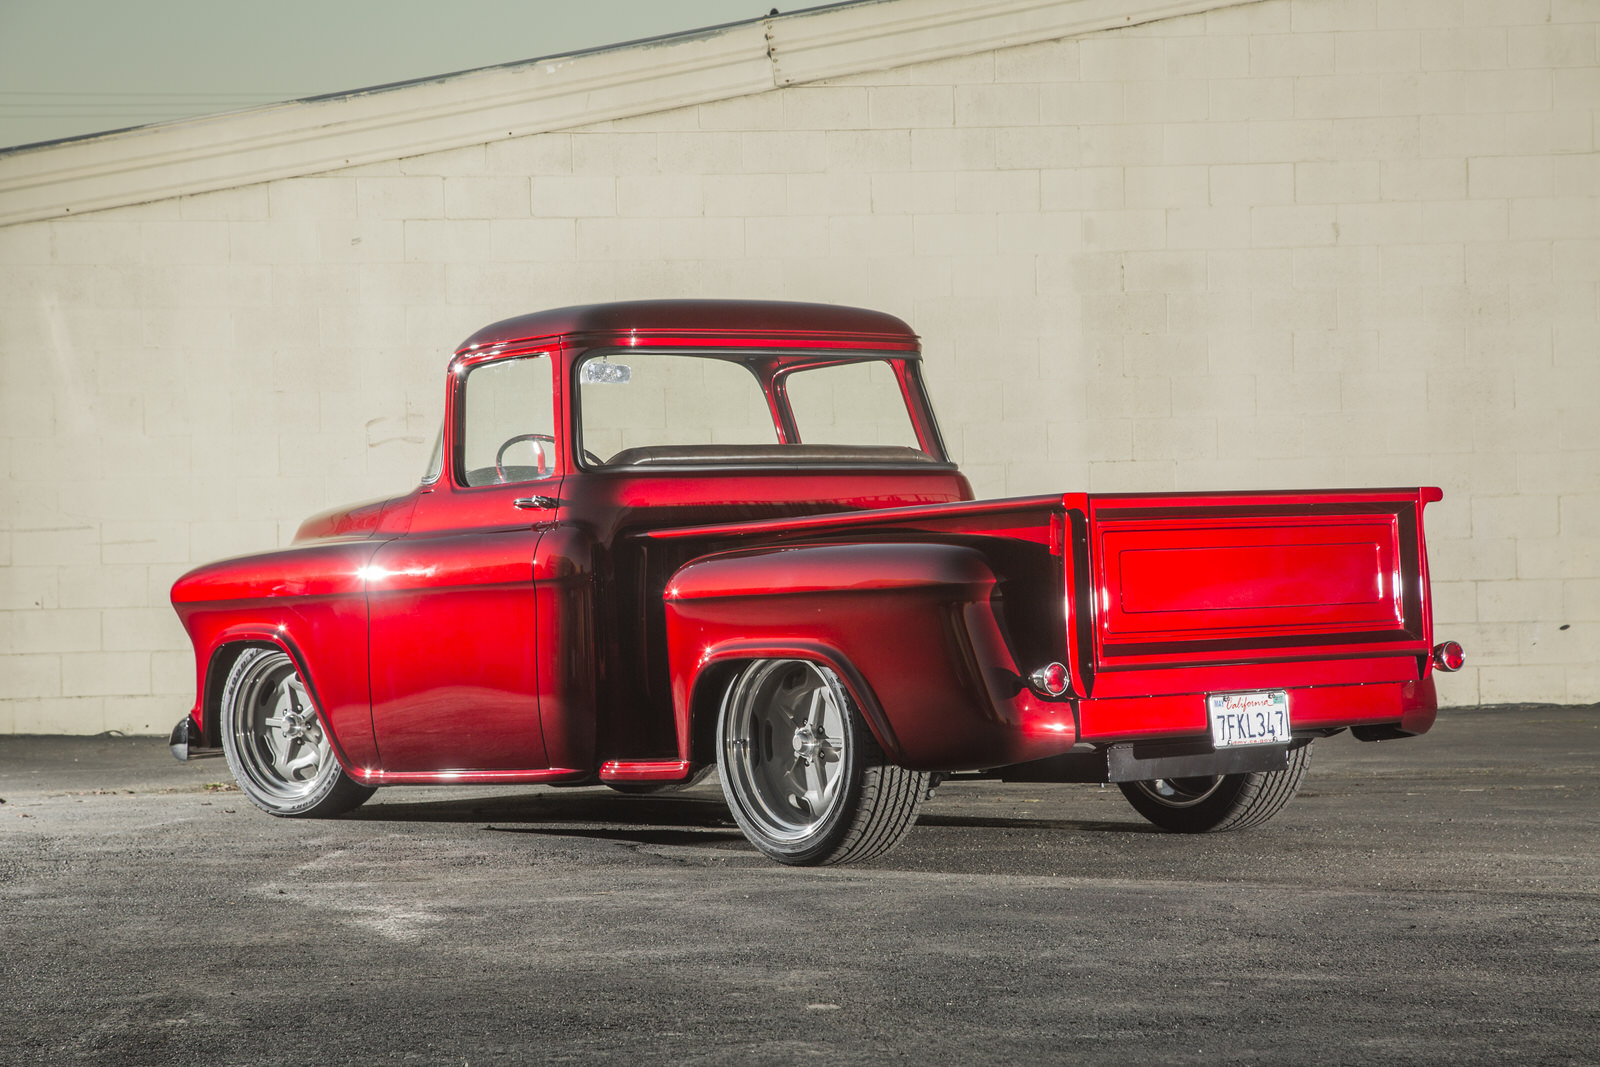 Miguel Nava 1956 Chevy Pickup - South City Rod & Custom - Photo by Tim Sutton